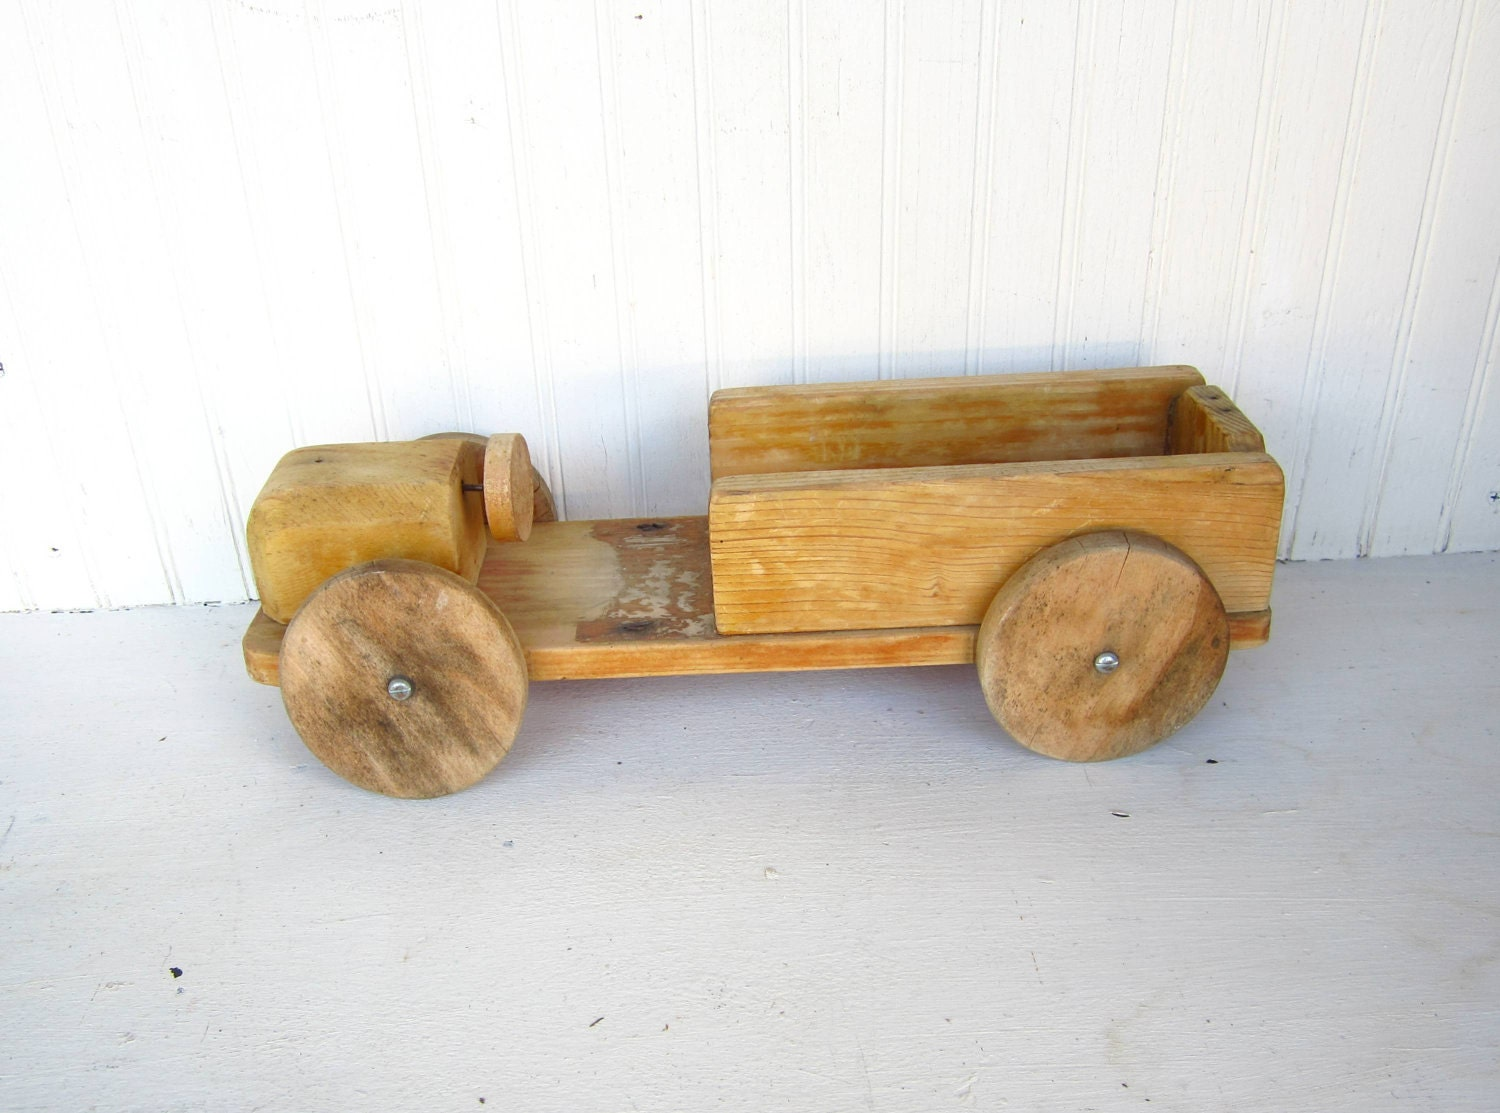 Vintage Wooden Handmade Toy Truck Primitive by thejunkman on Etsy